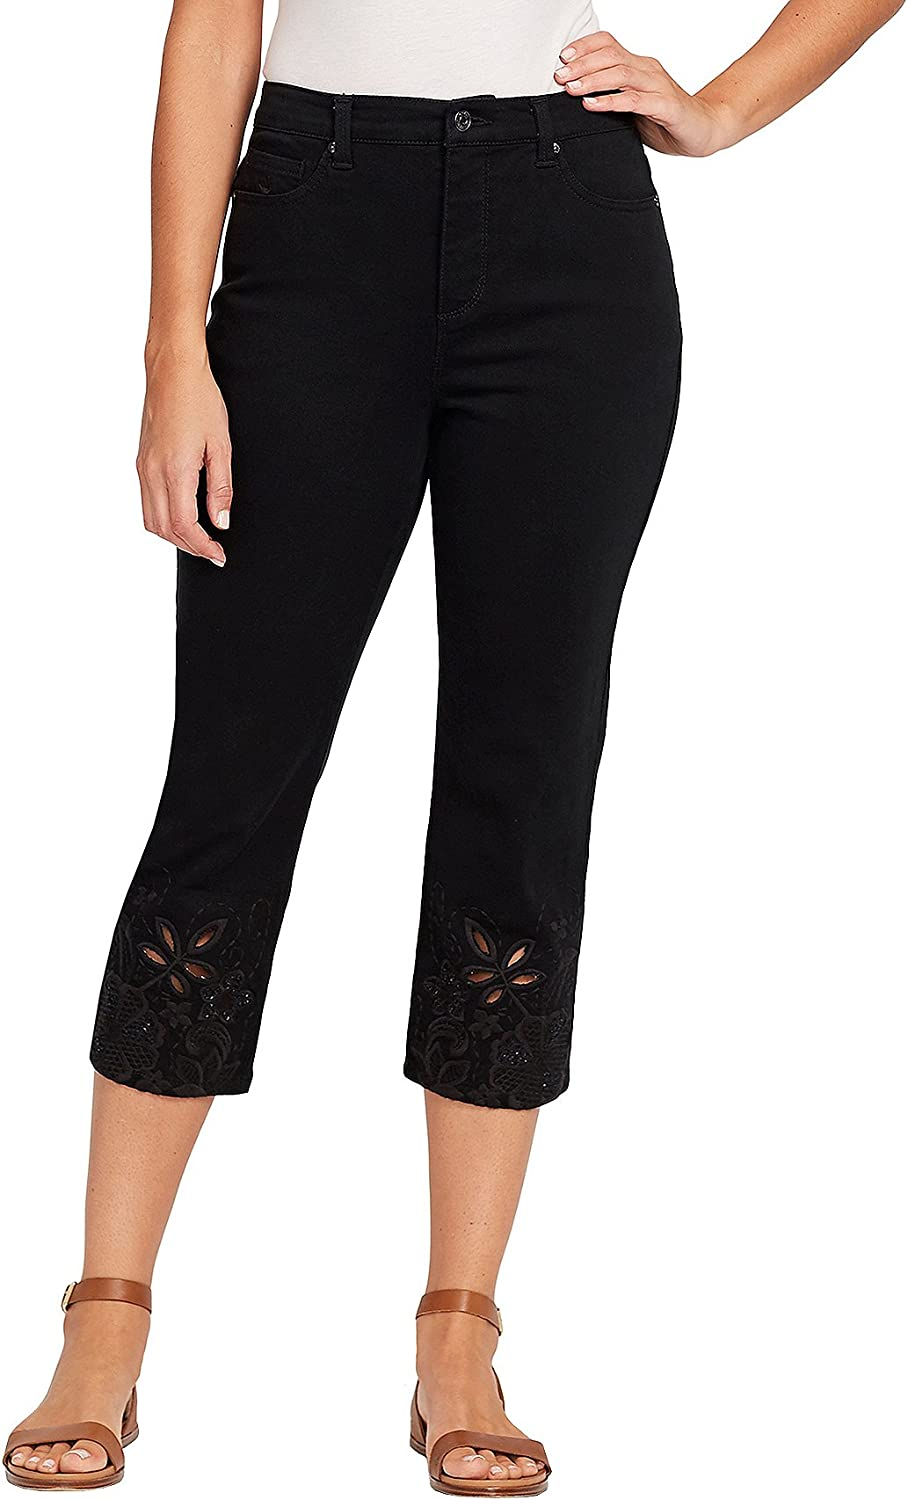 Gloria Vanderbilt Floral Embroidery and Cutout Detail Cuff Cropped Pants